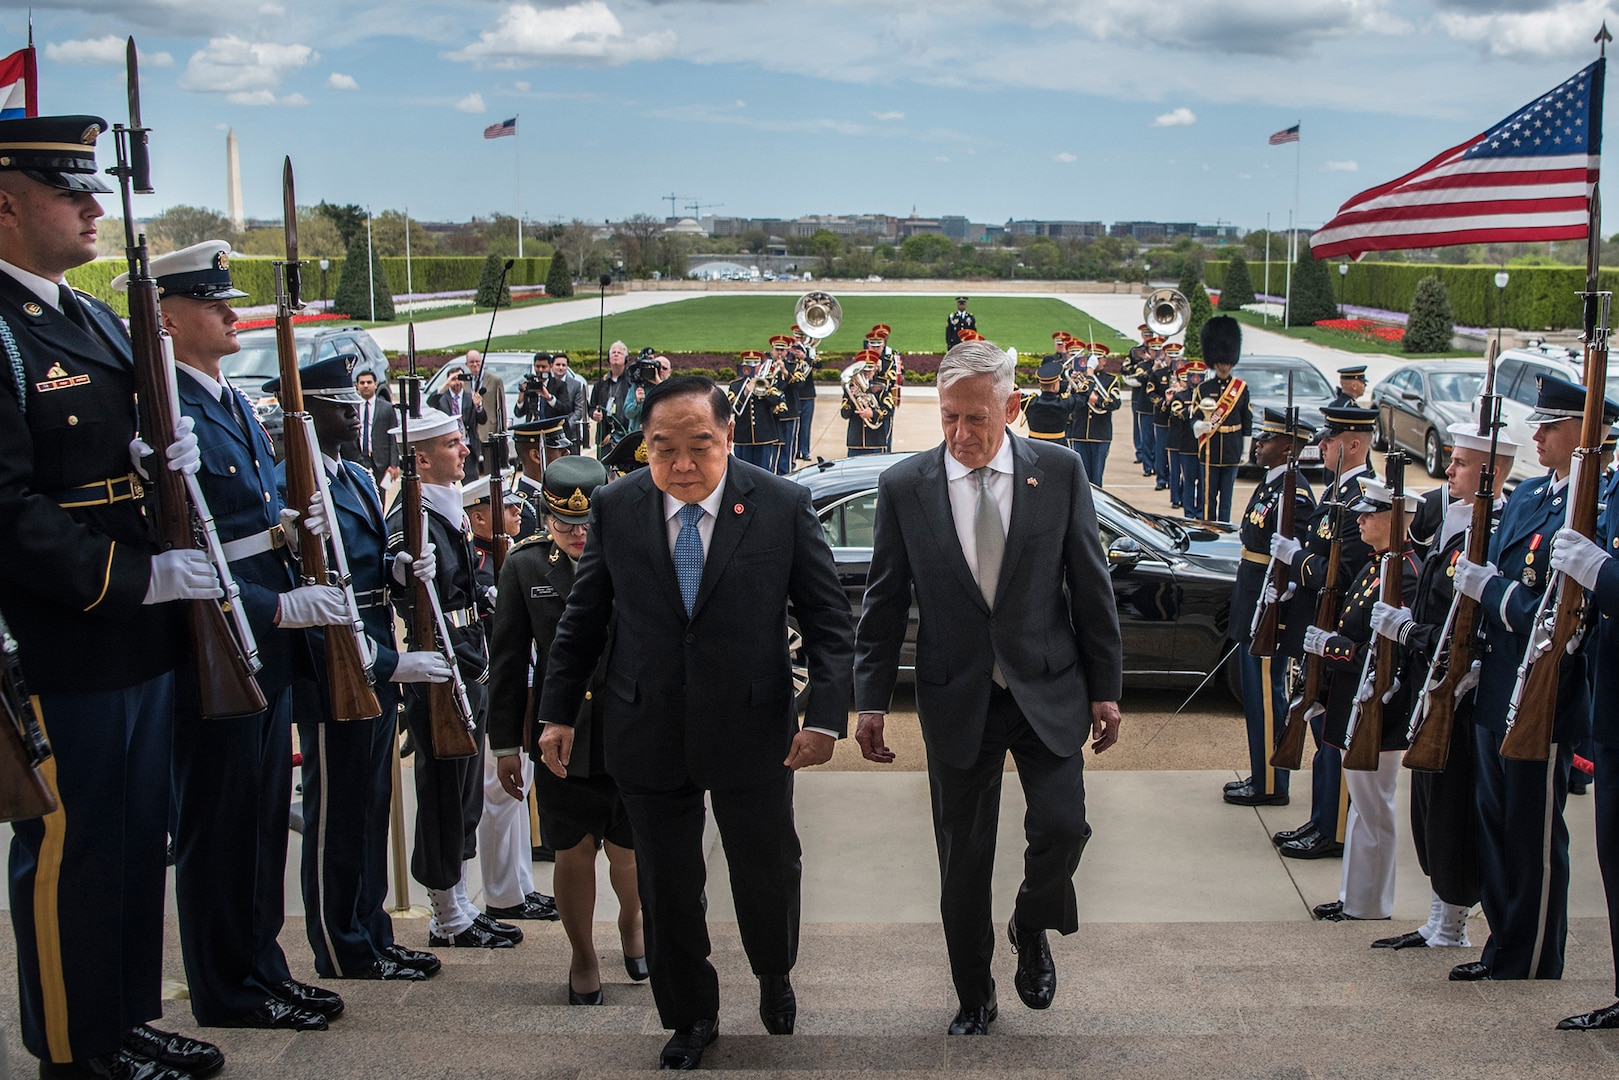 Readout of Secretary James N. Mattis' meeting with Thailand's Deputy Prime Minister and Minister of Defence General Prawit Wongsuwan